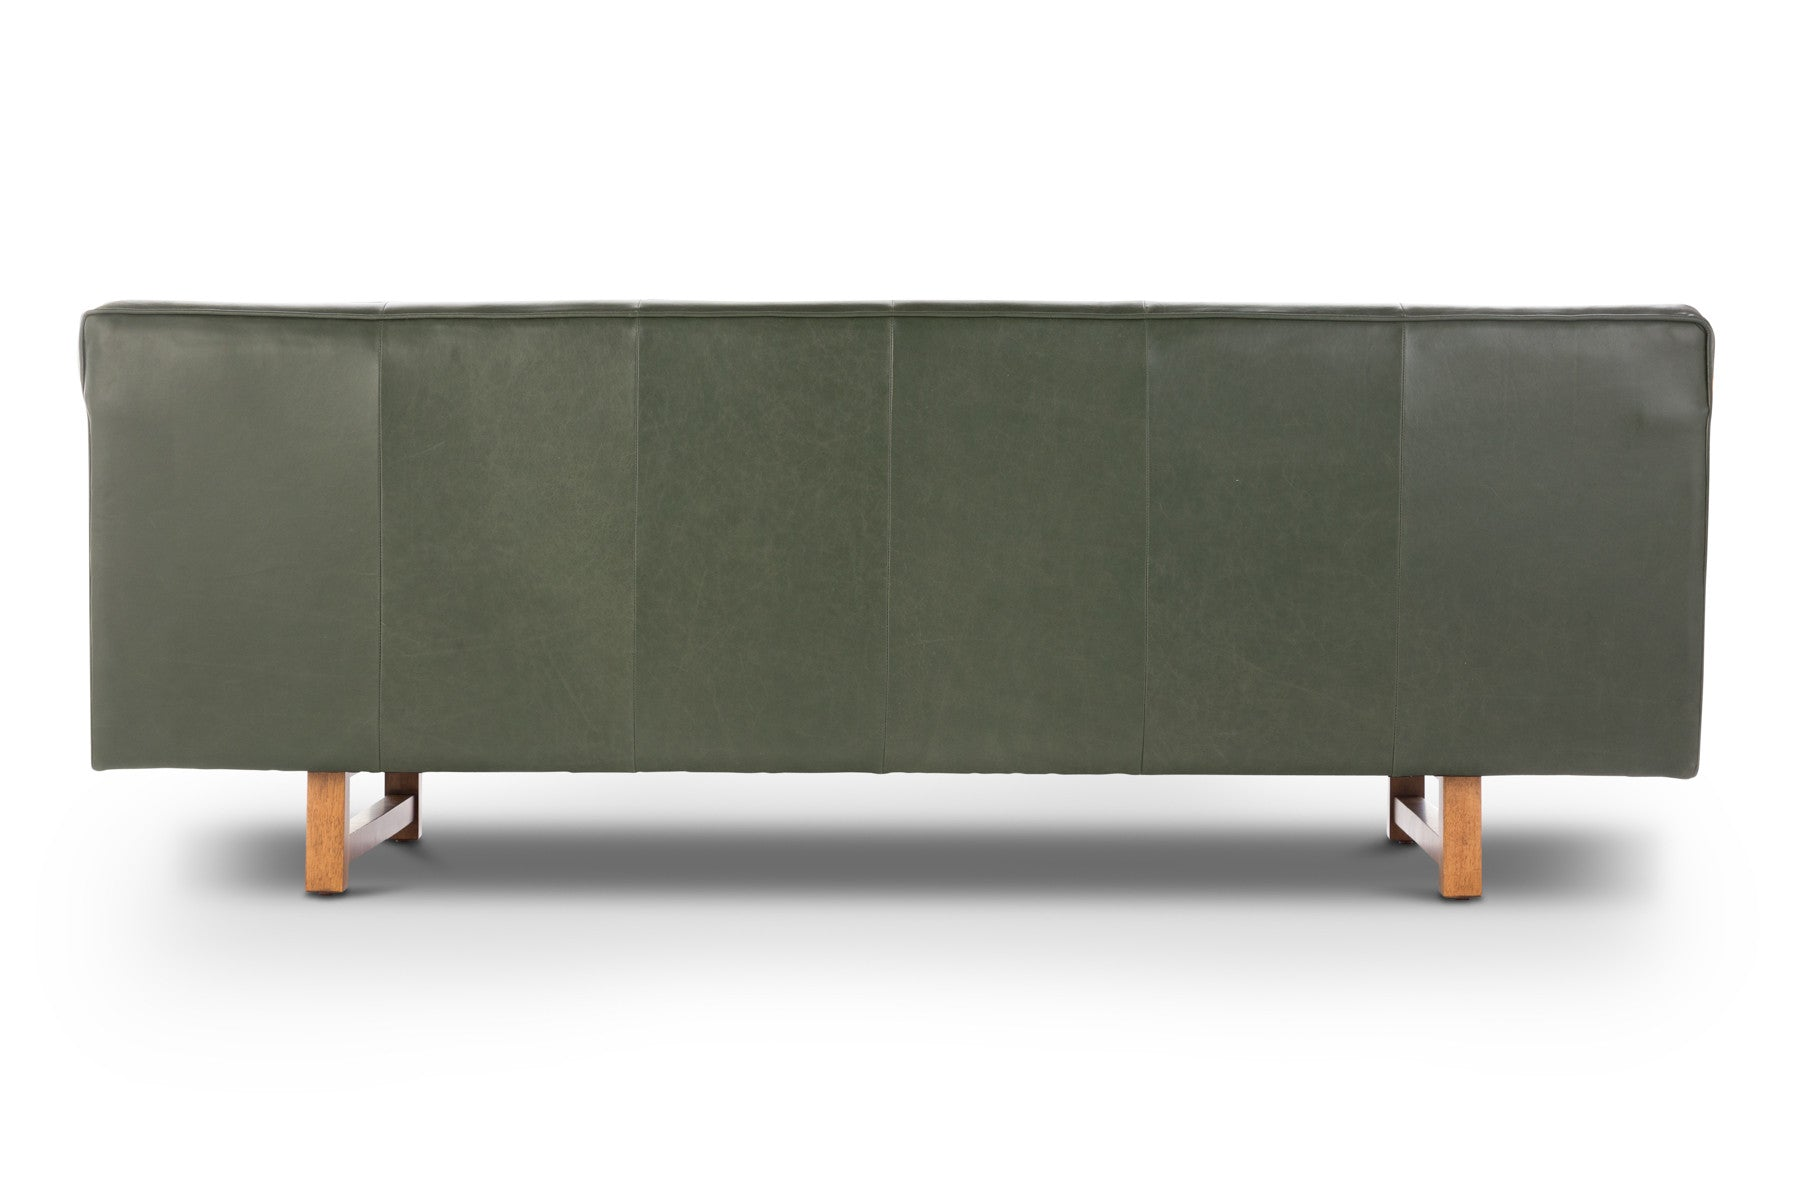 Contemporary Italian leather sofa